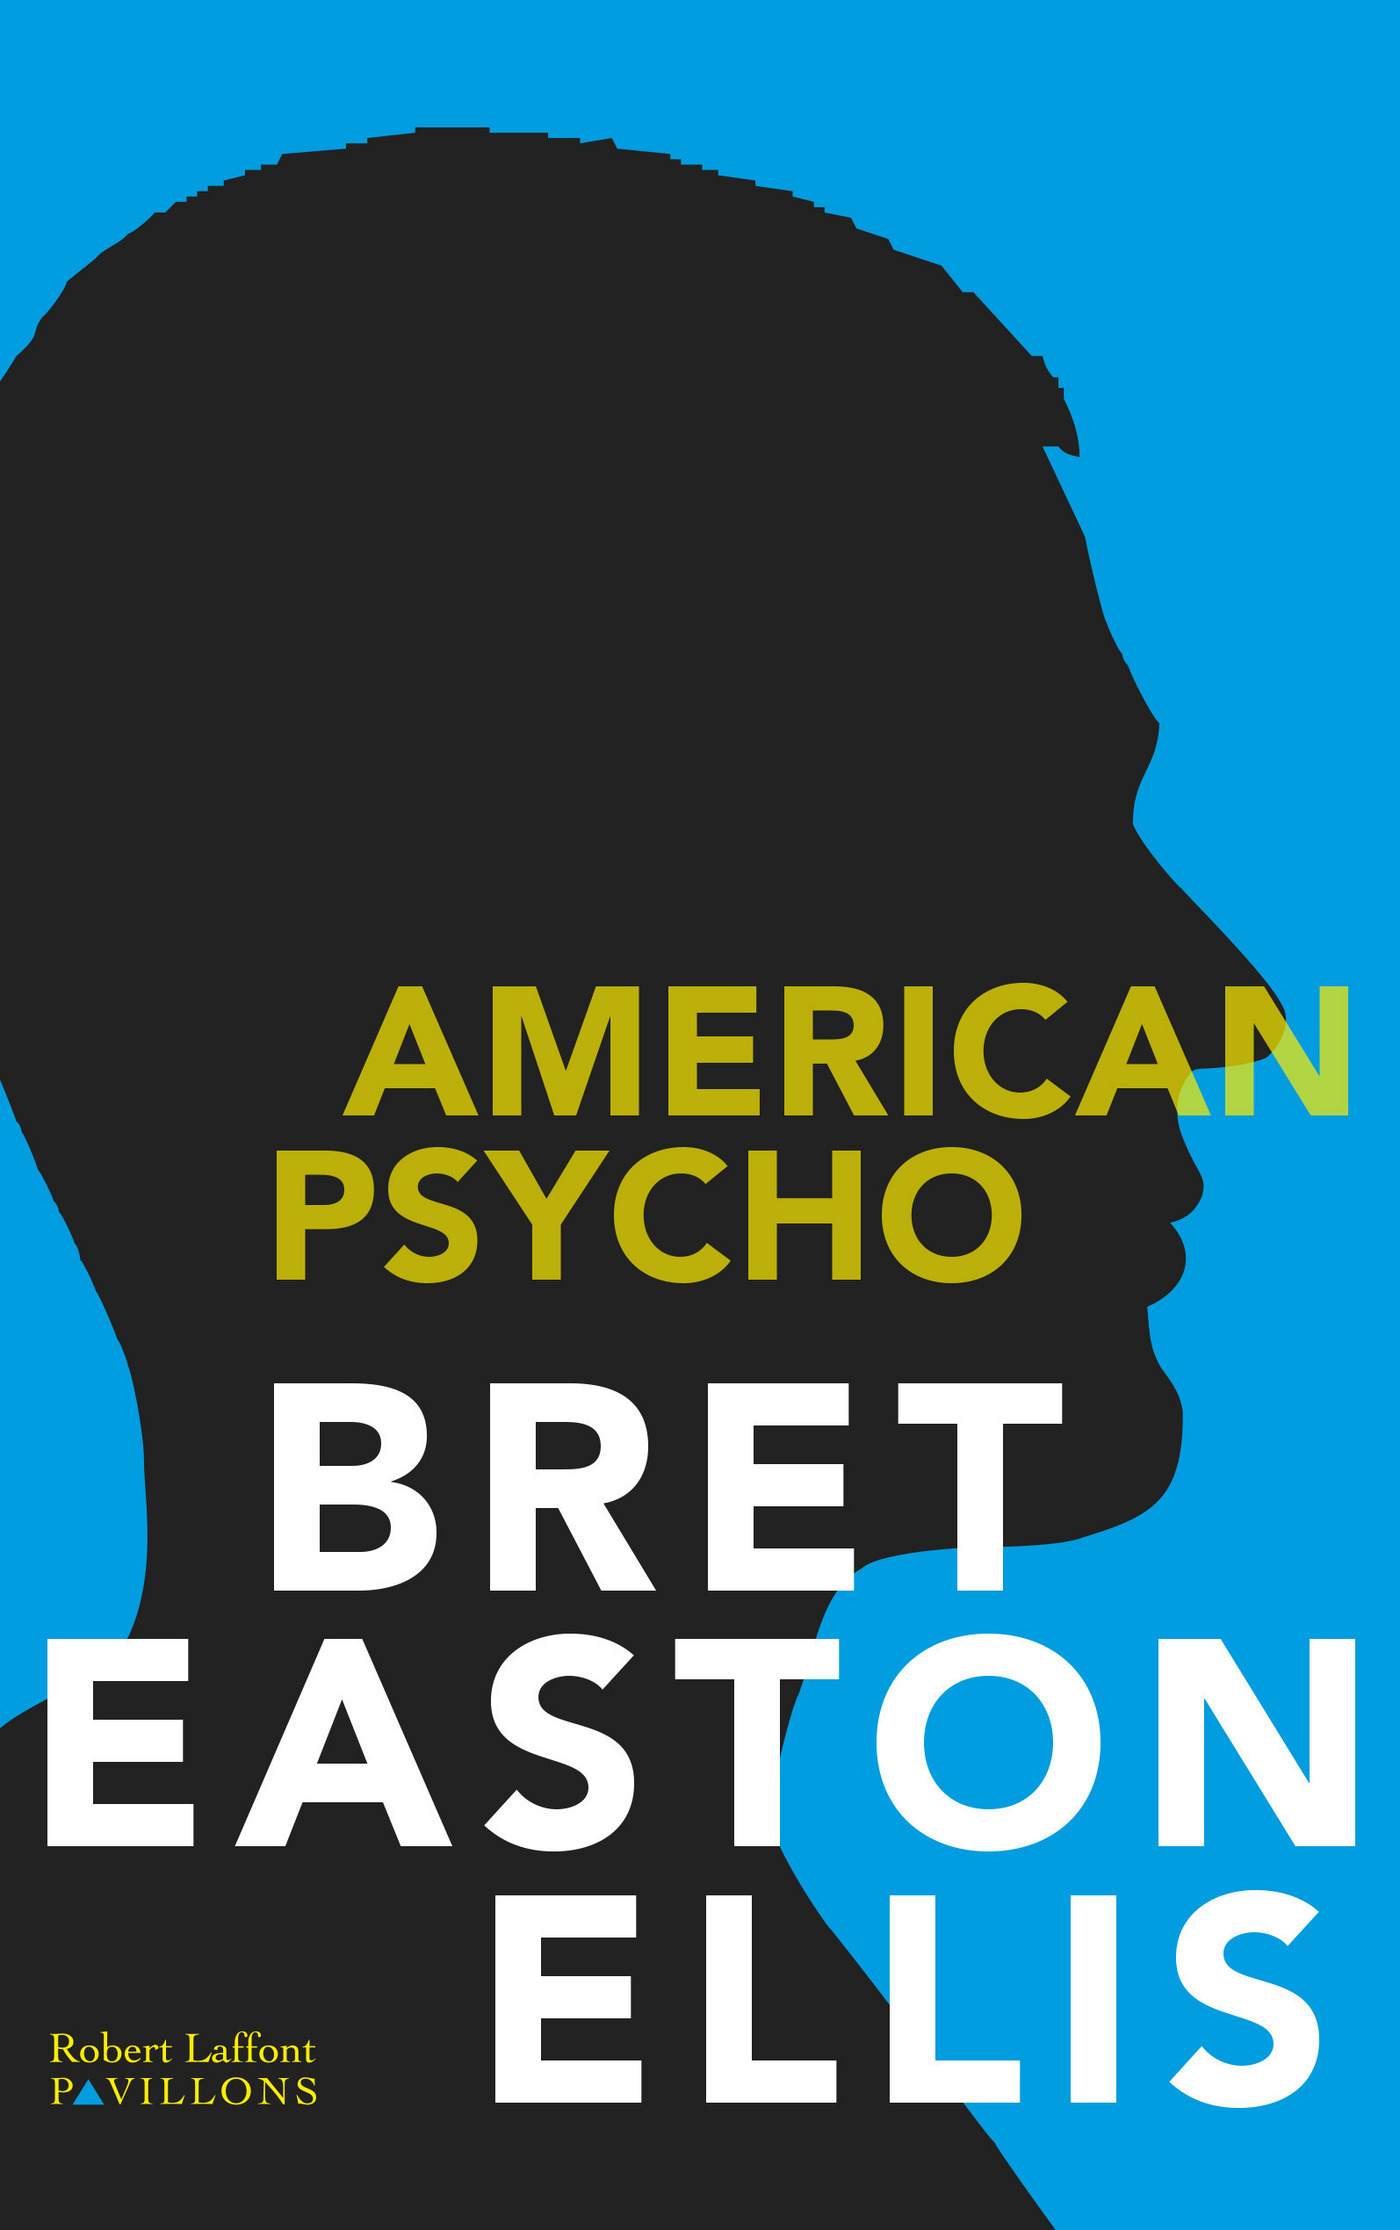 American psycho | EASTON ELLIS, Bret